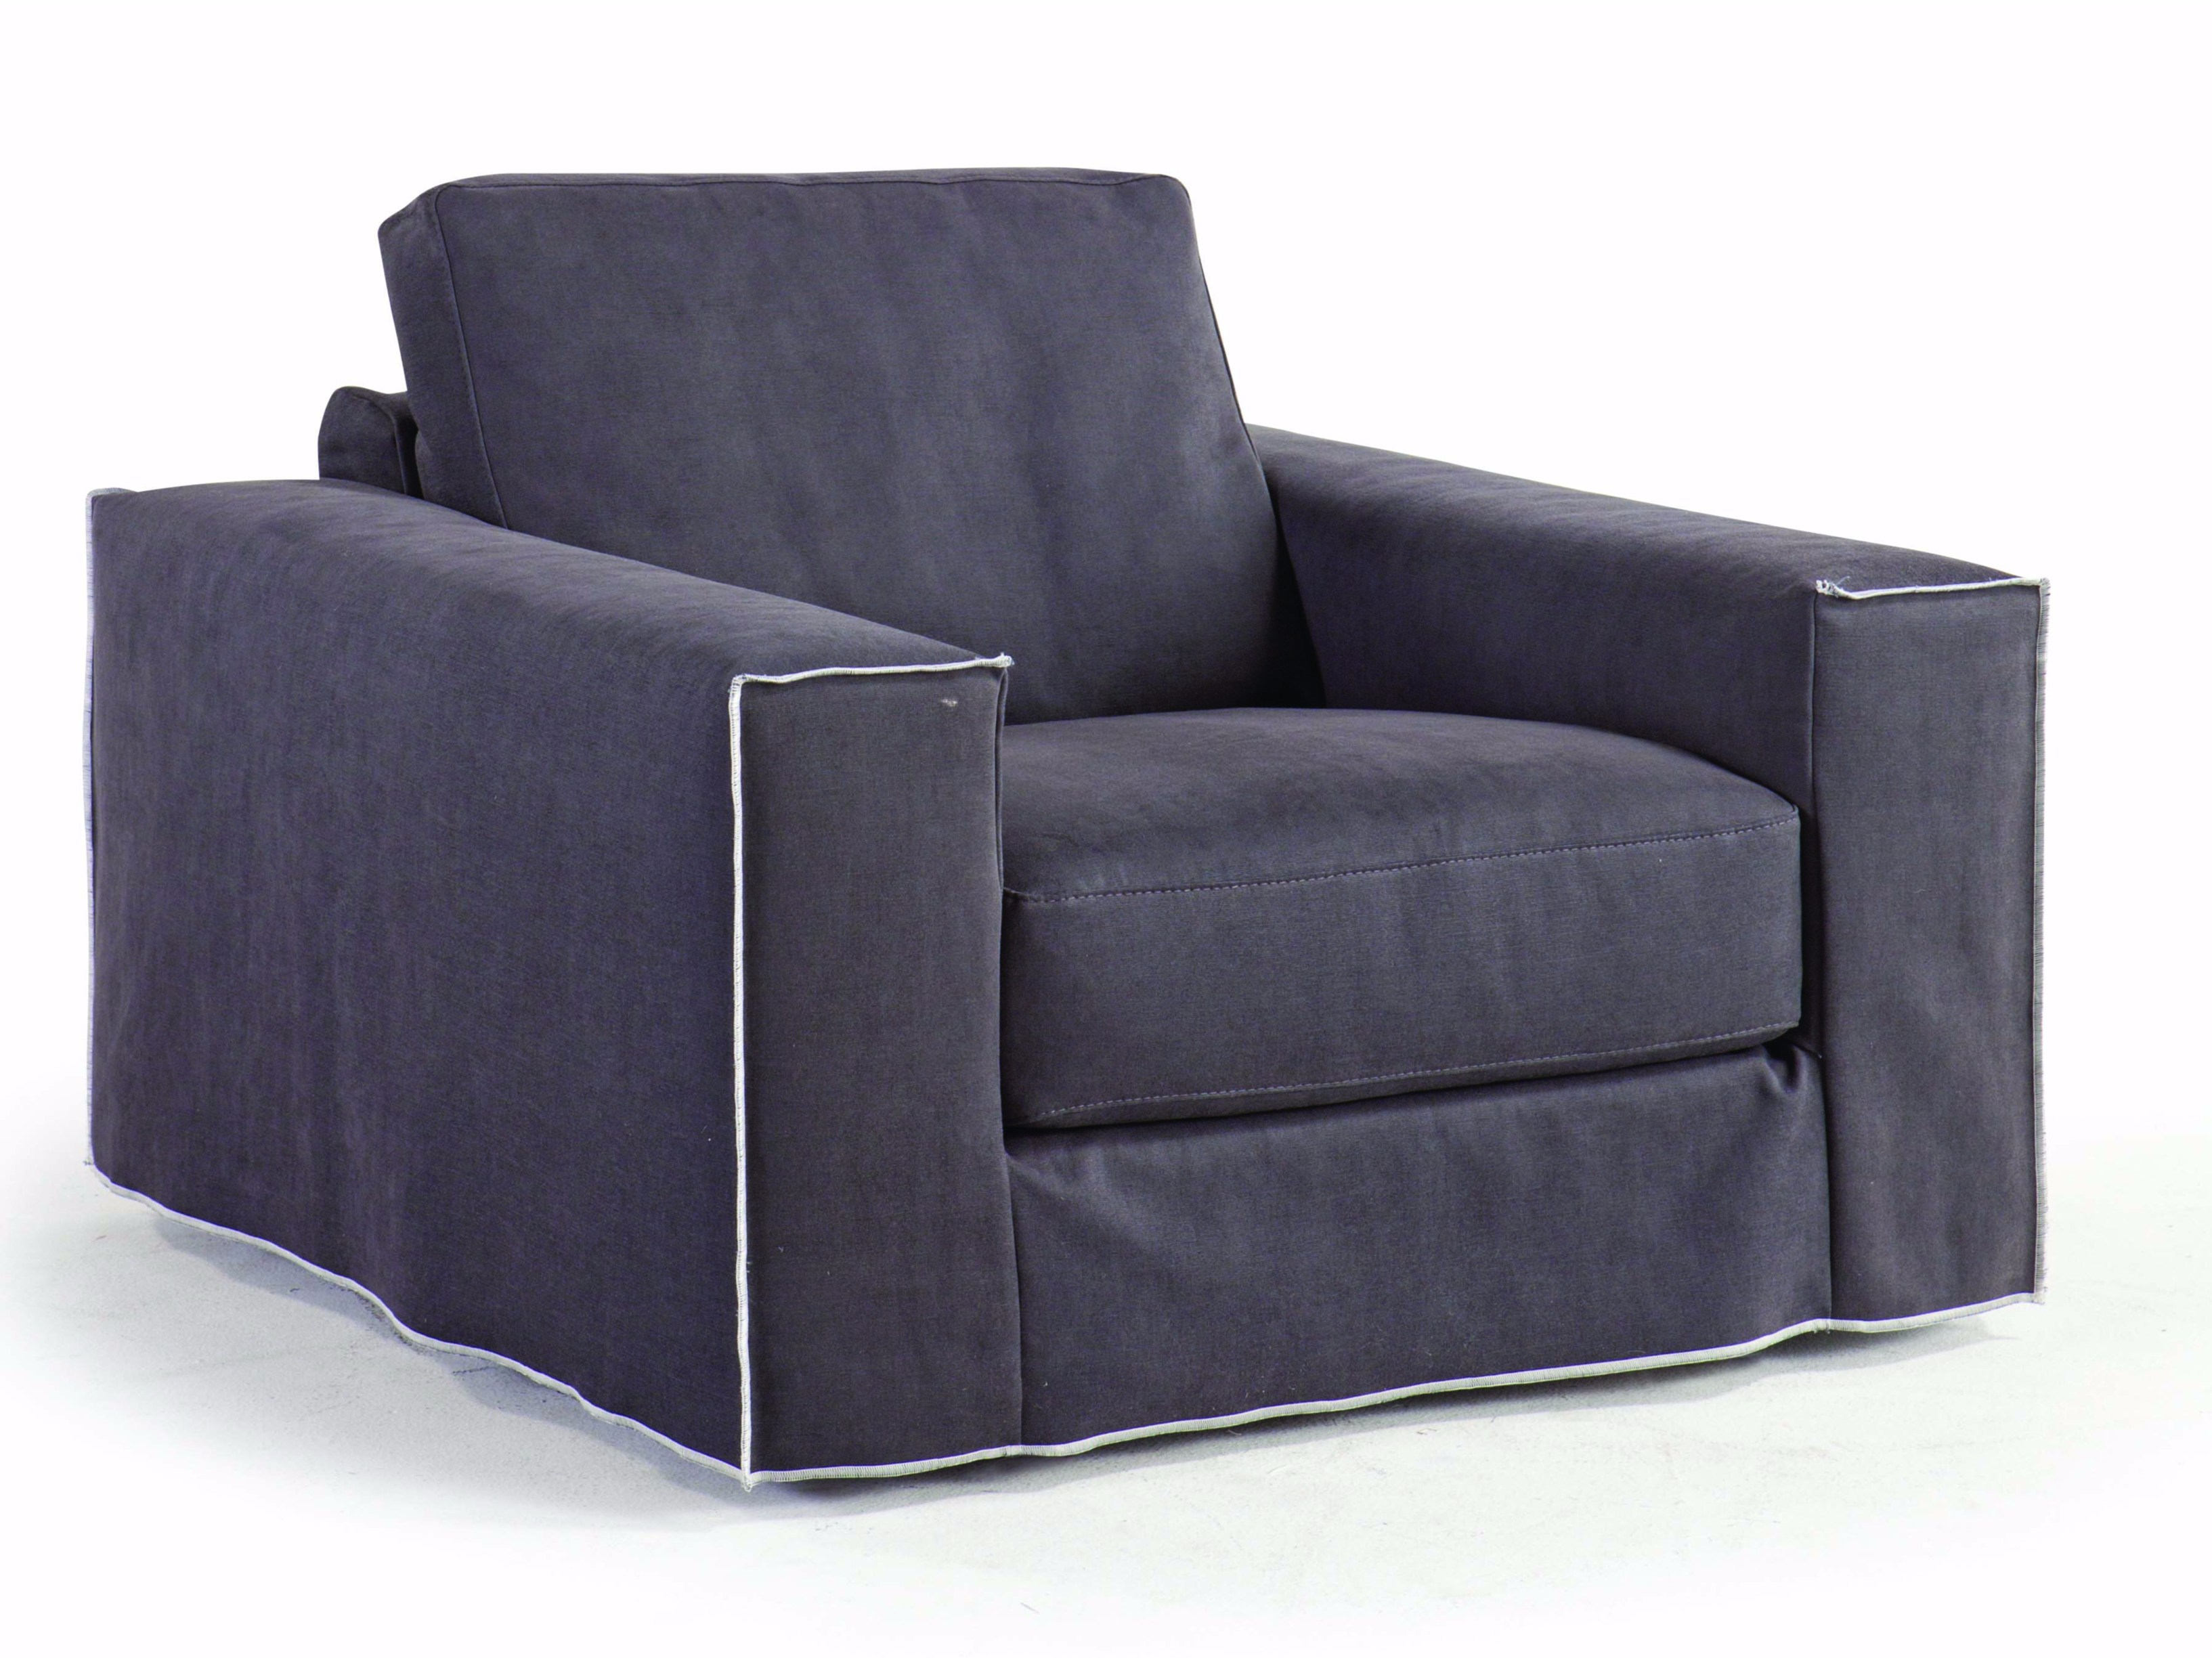 fauteuil rembourr en tissu avec accoudoirs karawan by roche bobois. Black Bedroom Furniture Sets. Home Design Ideas